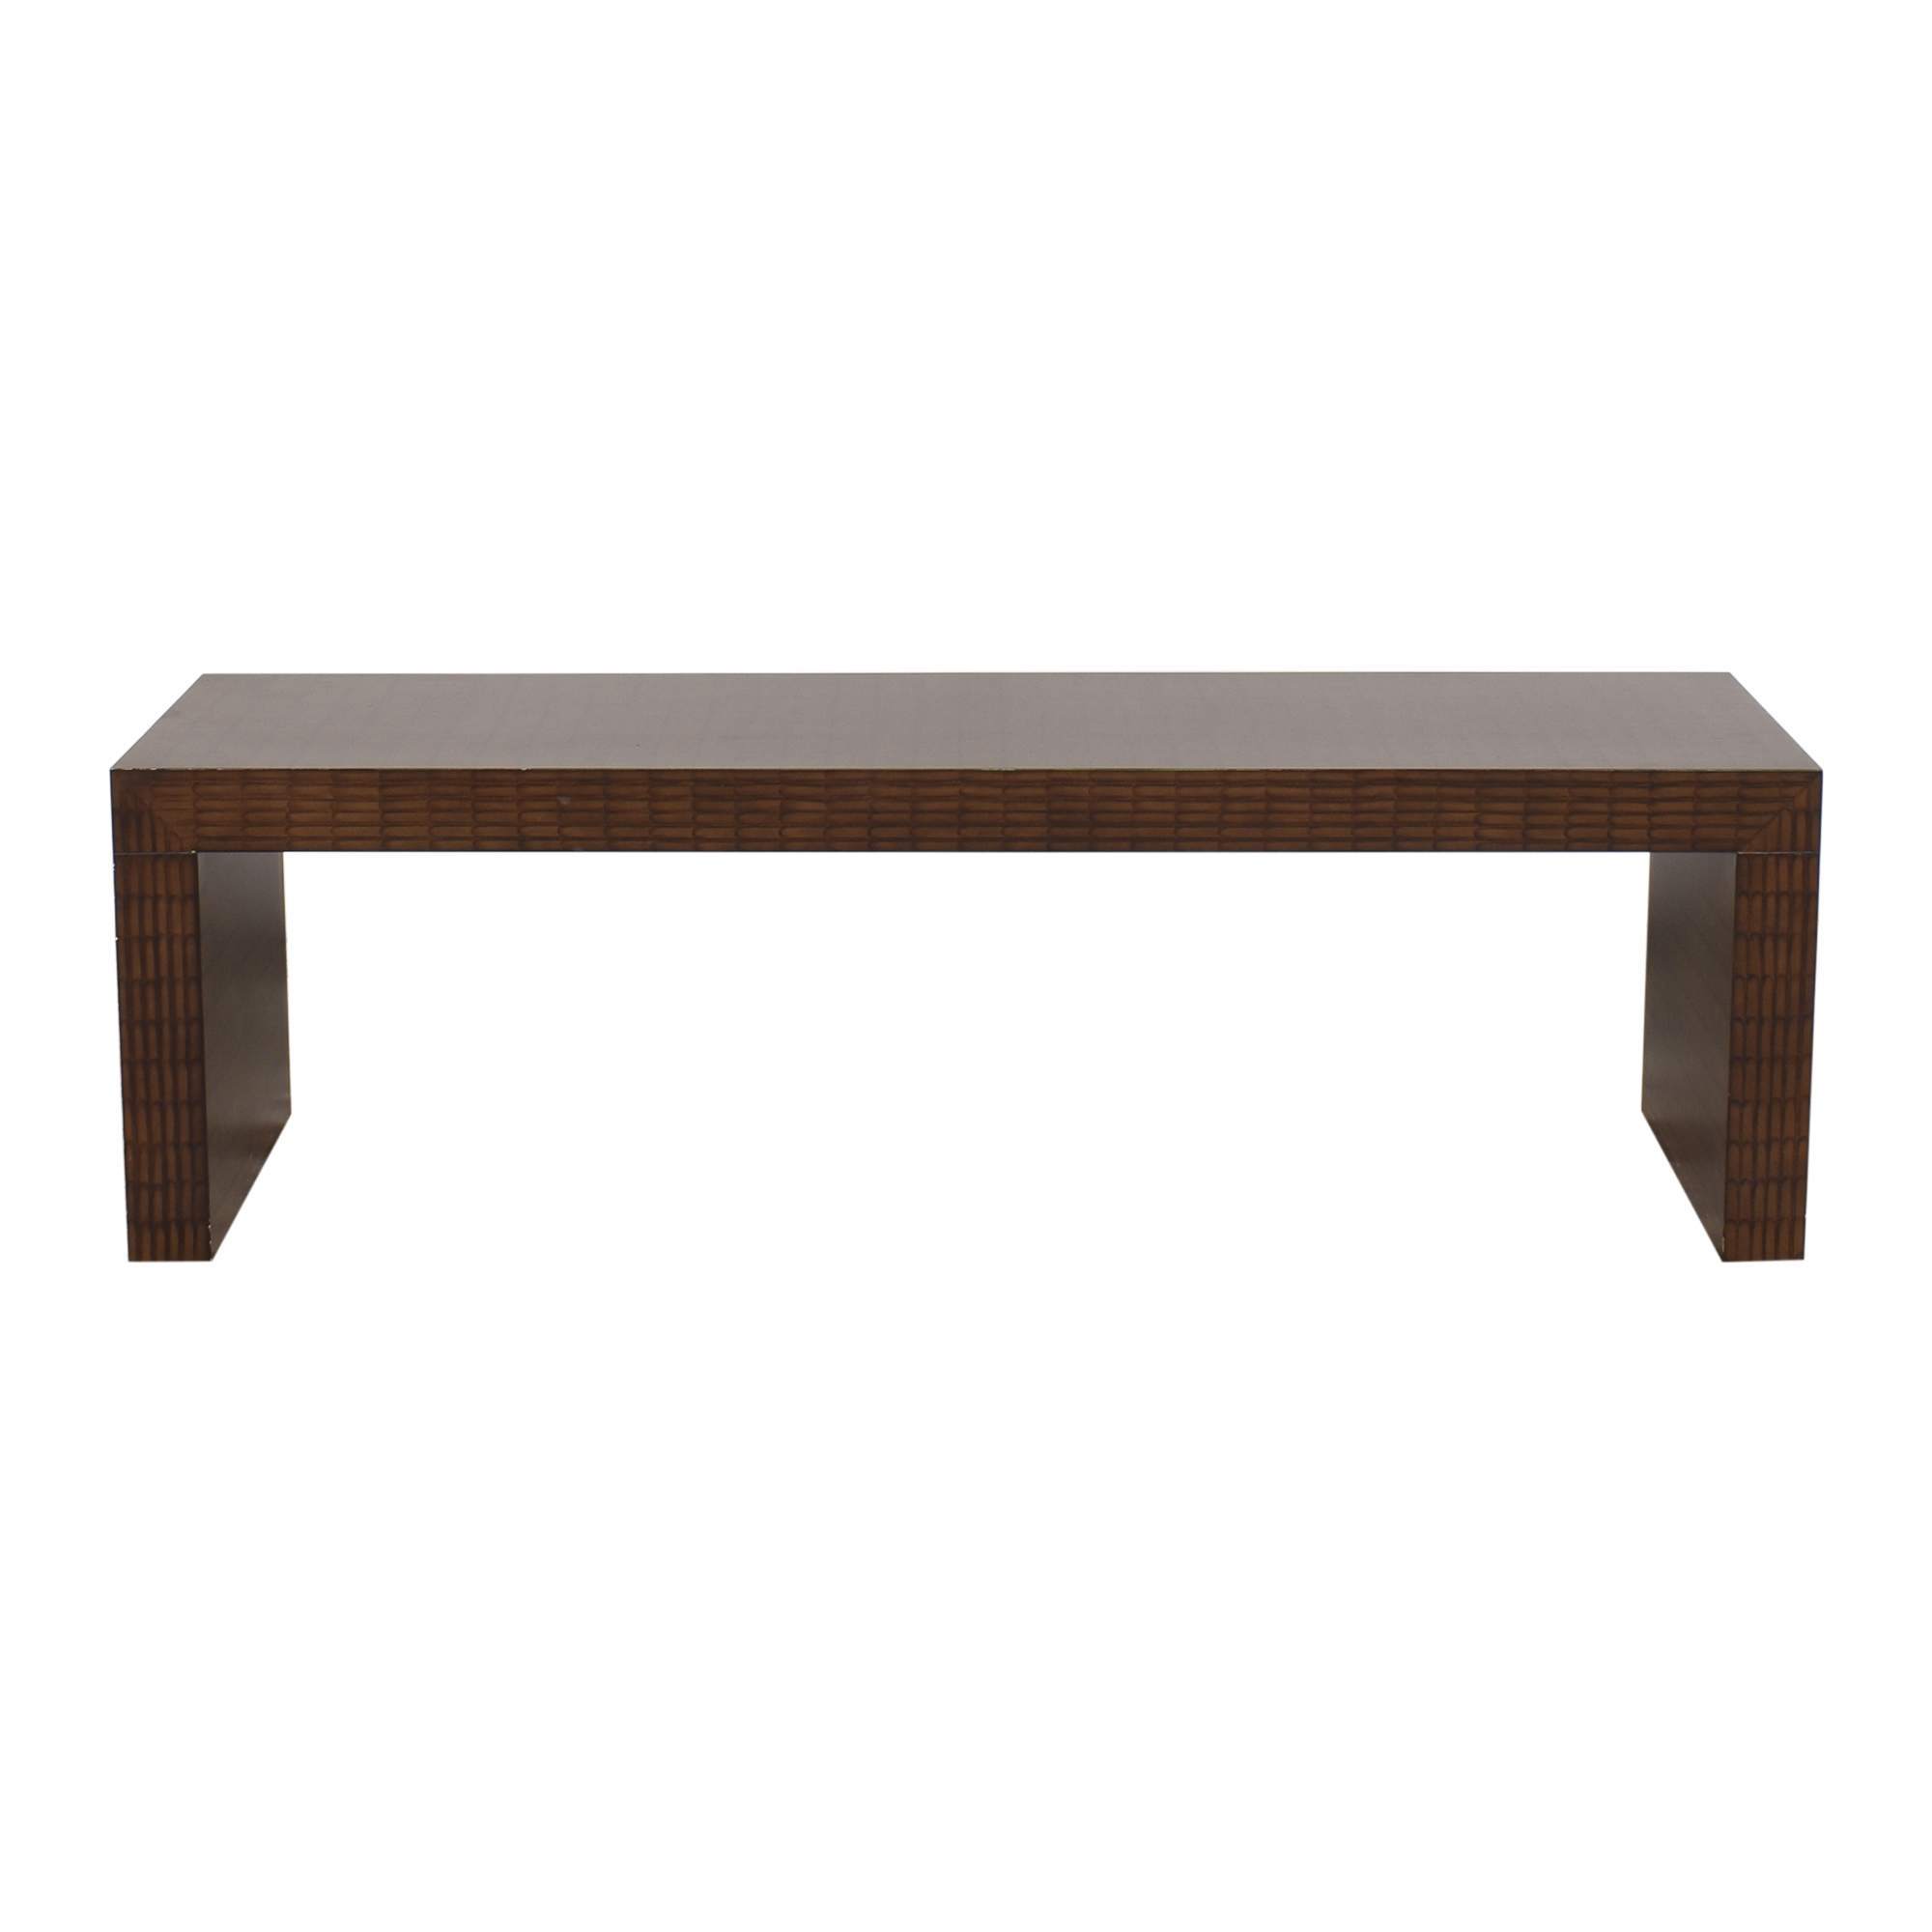 Baker Furniture Baker Furniture Coffee Table nyc